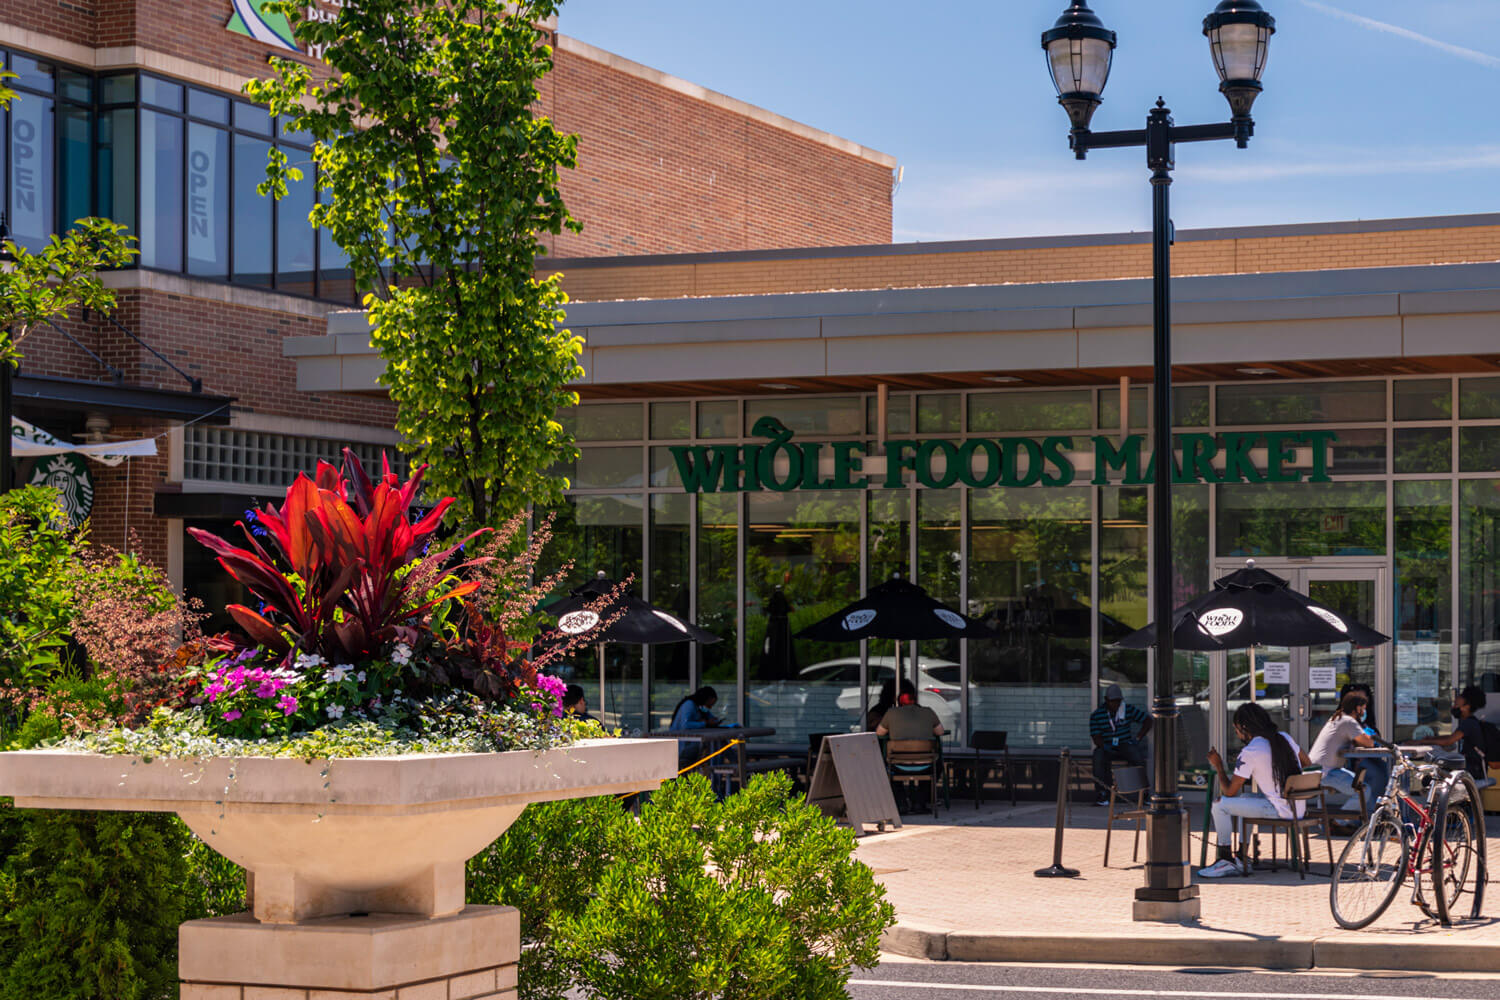 Whole Foods Market is right around the corner